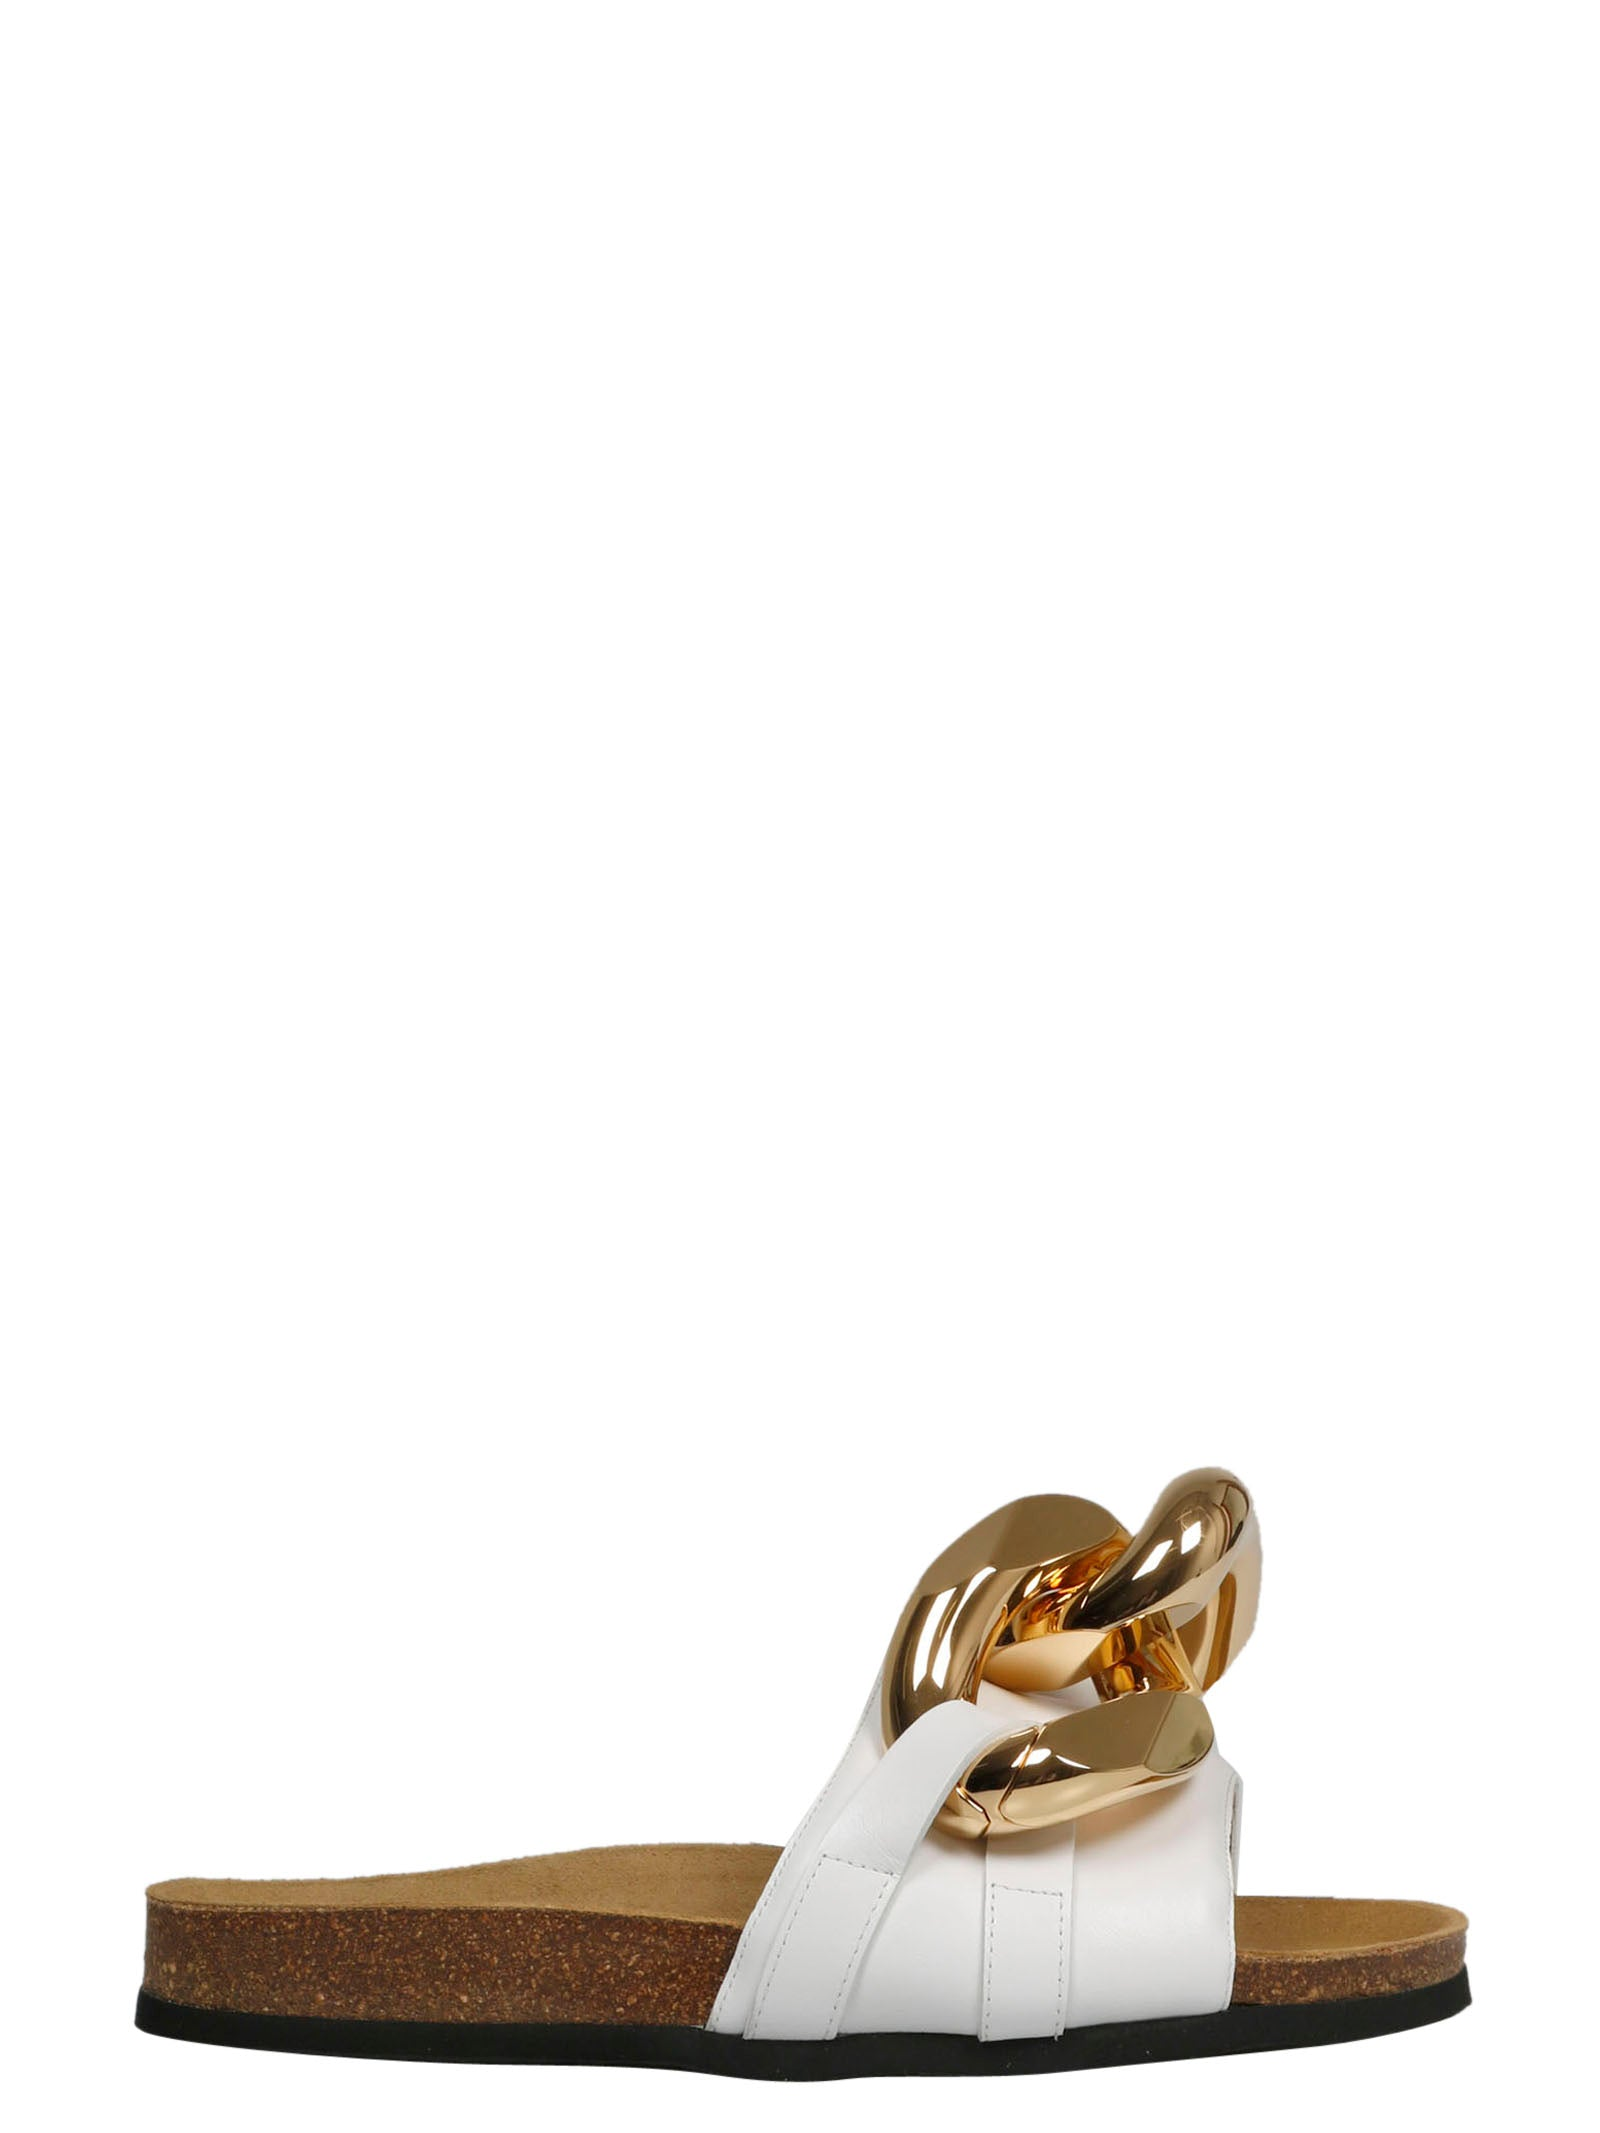 Jw Anderson Leathers JW ANDERSON CHAIN